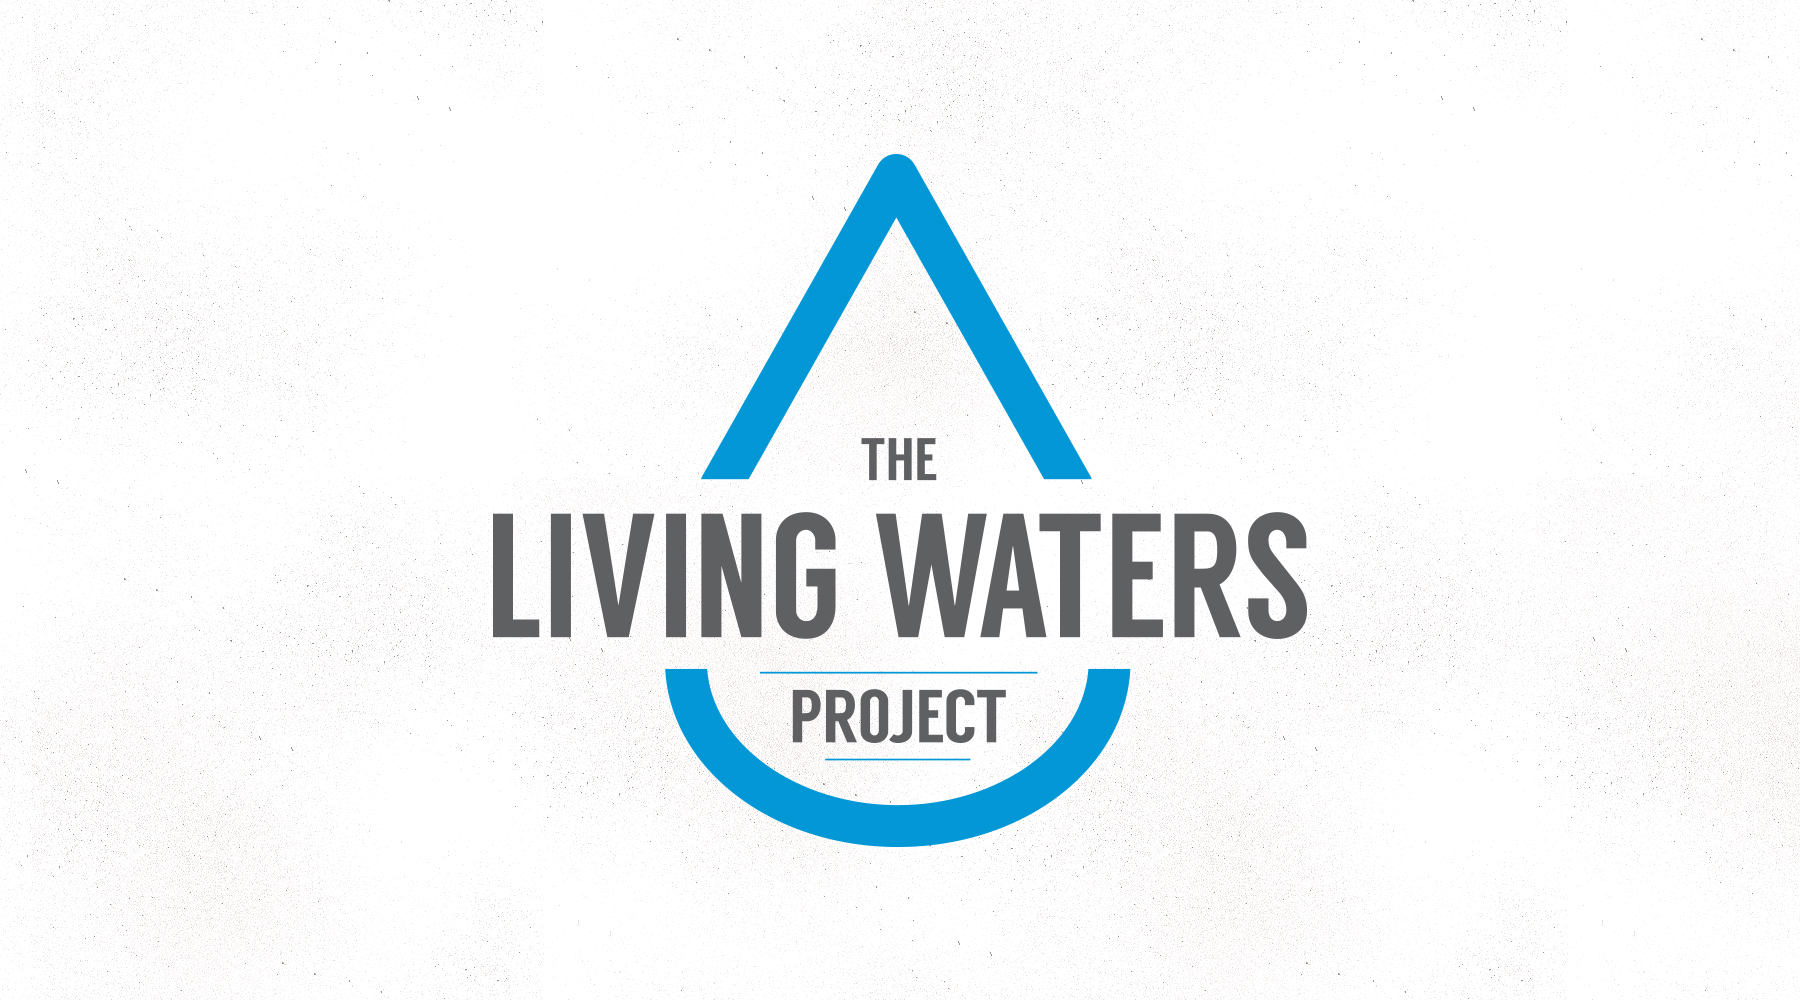 The Living Waters Project